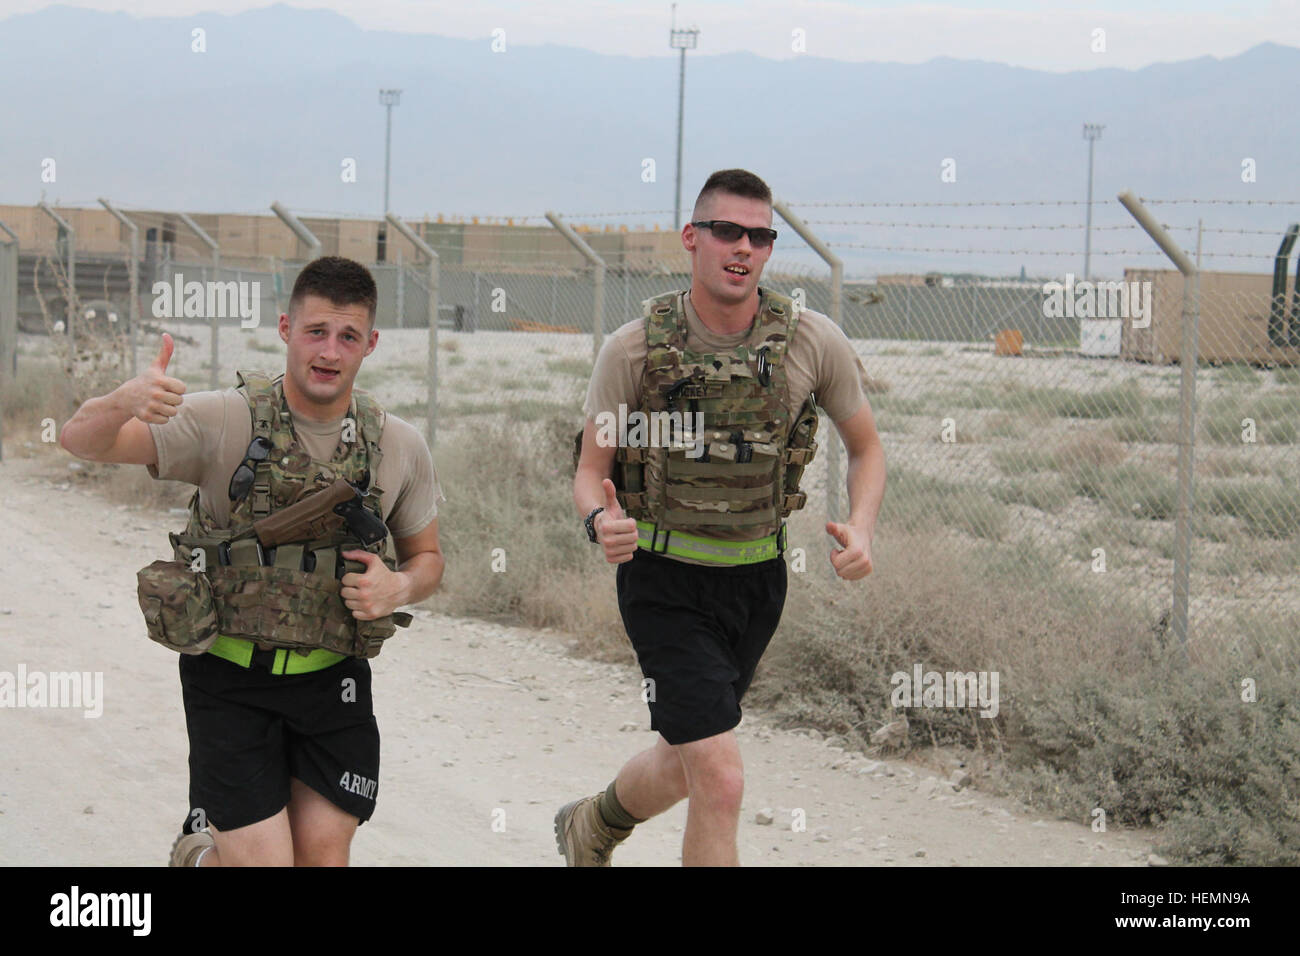 Running Air Kandahar Base